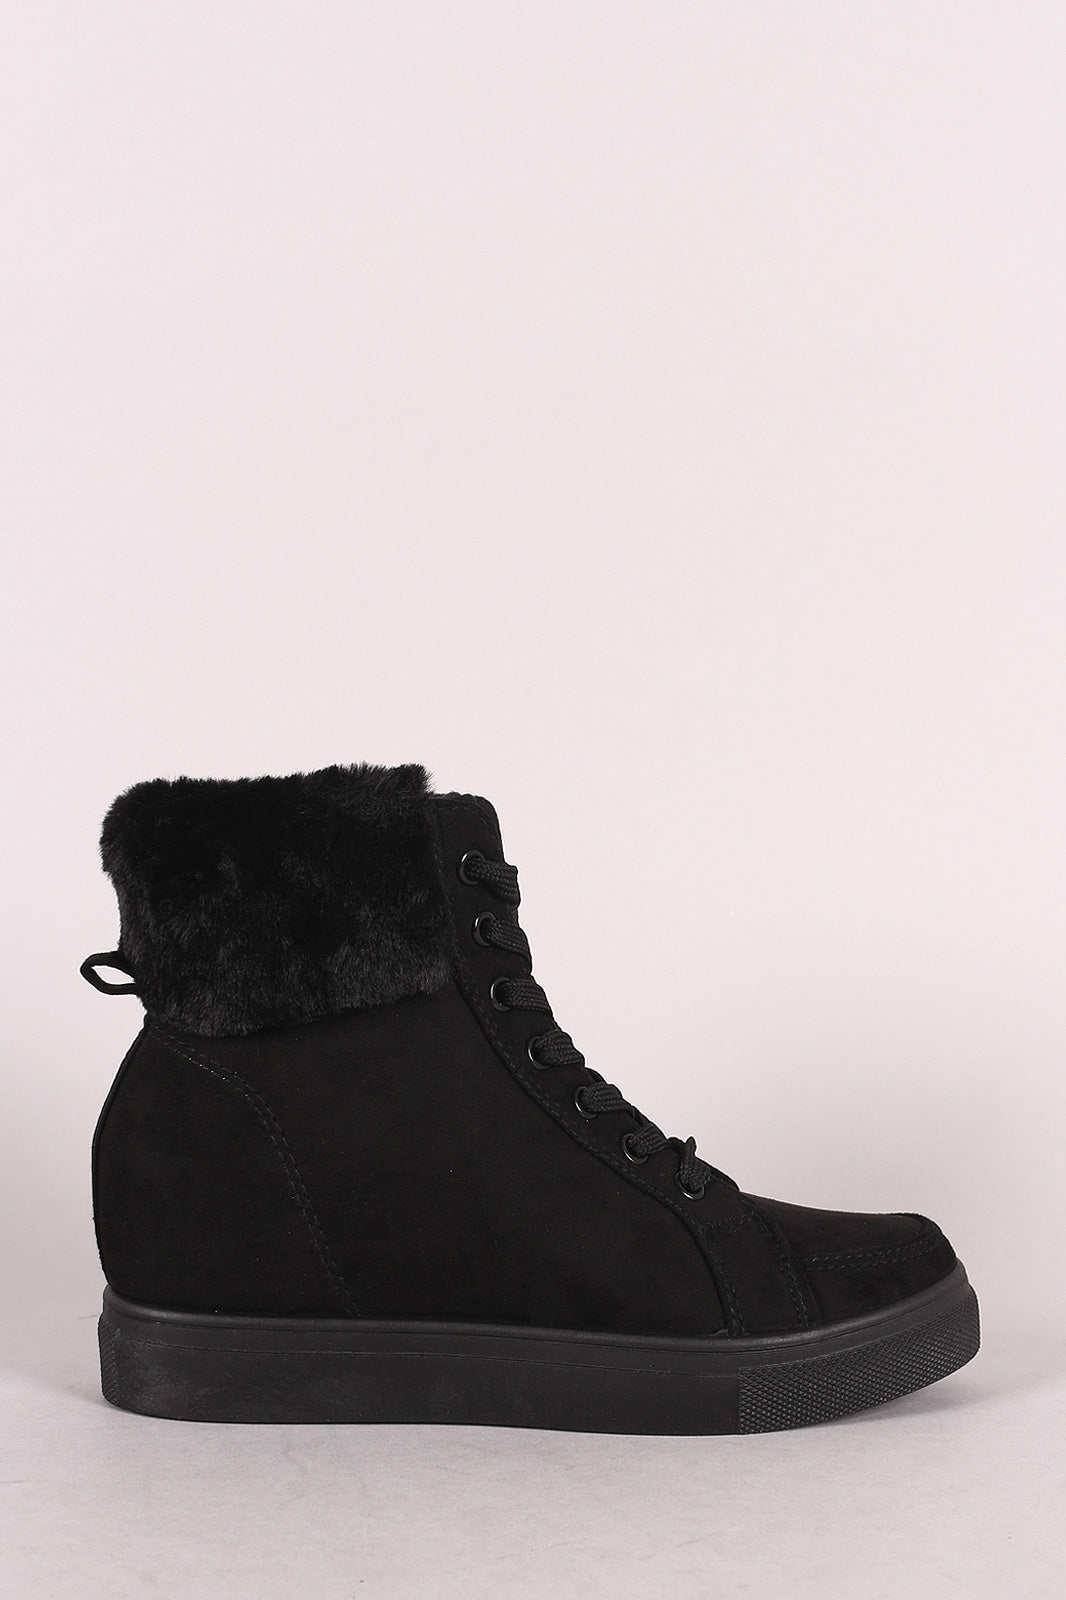 Bamboo Suede Fur Cuff Lace-Up High Top Wedge Sneaker